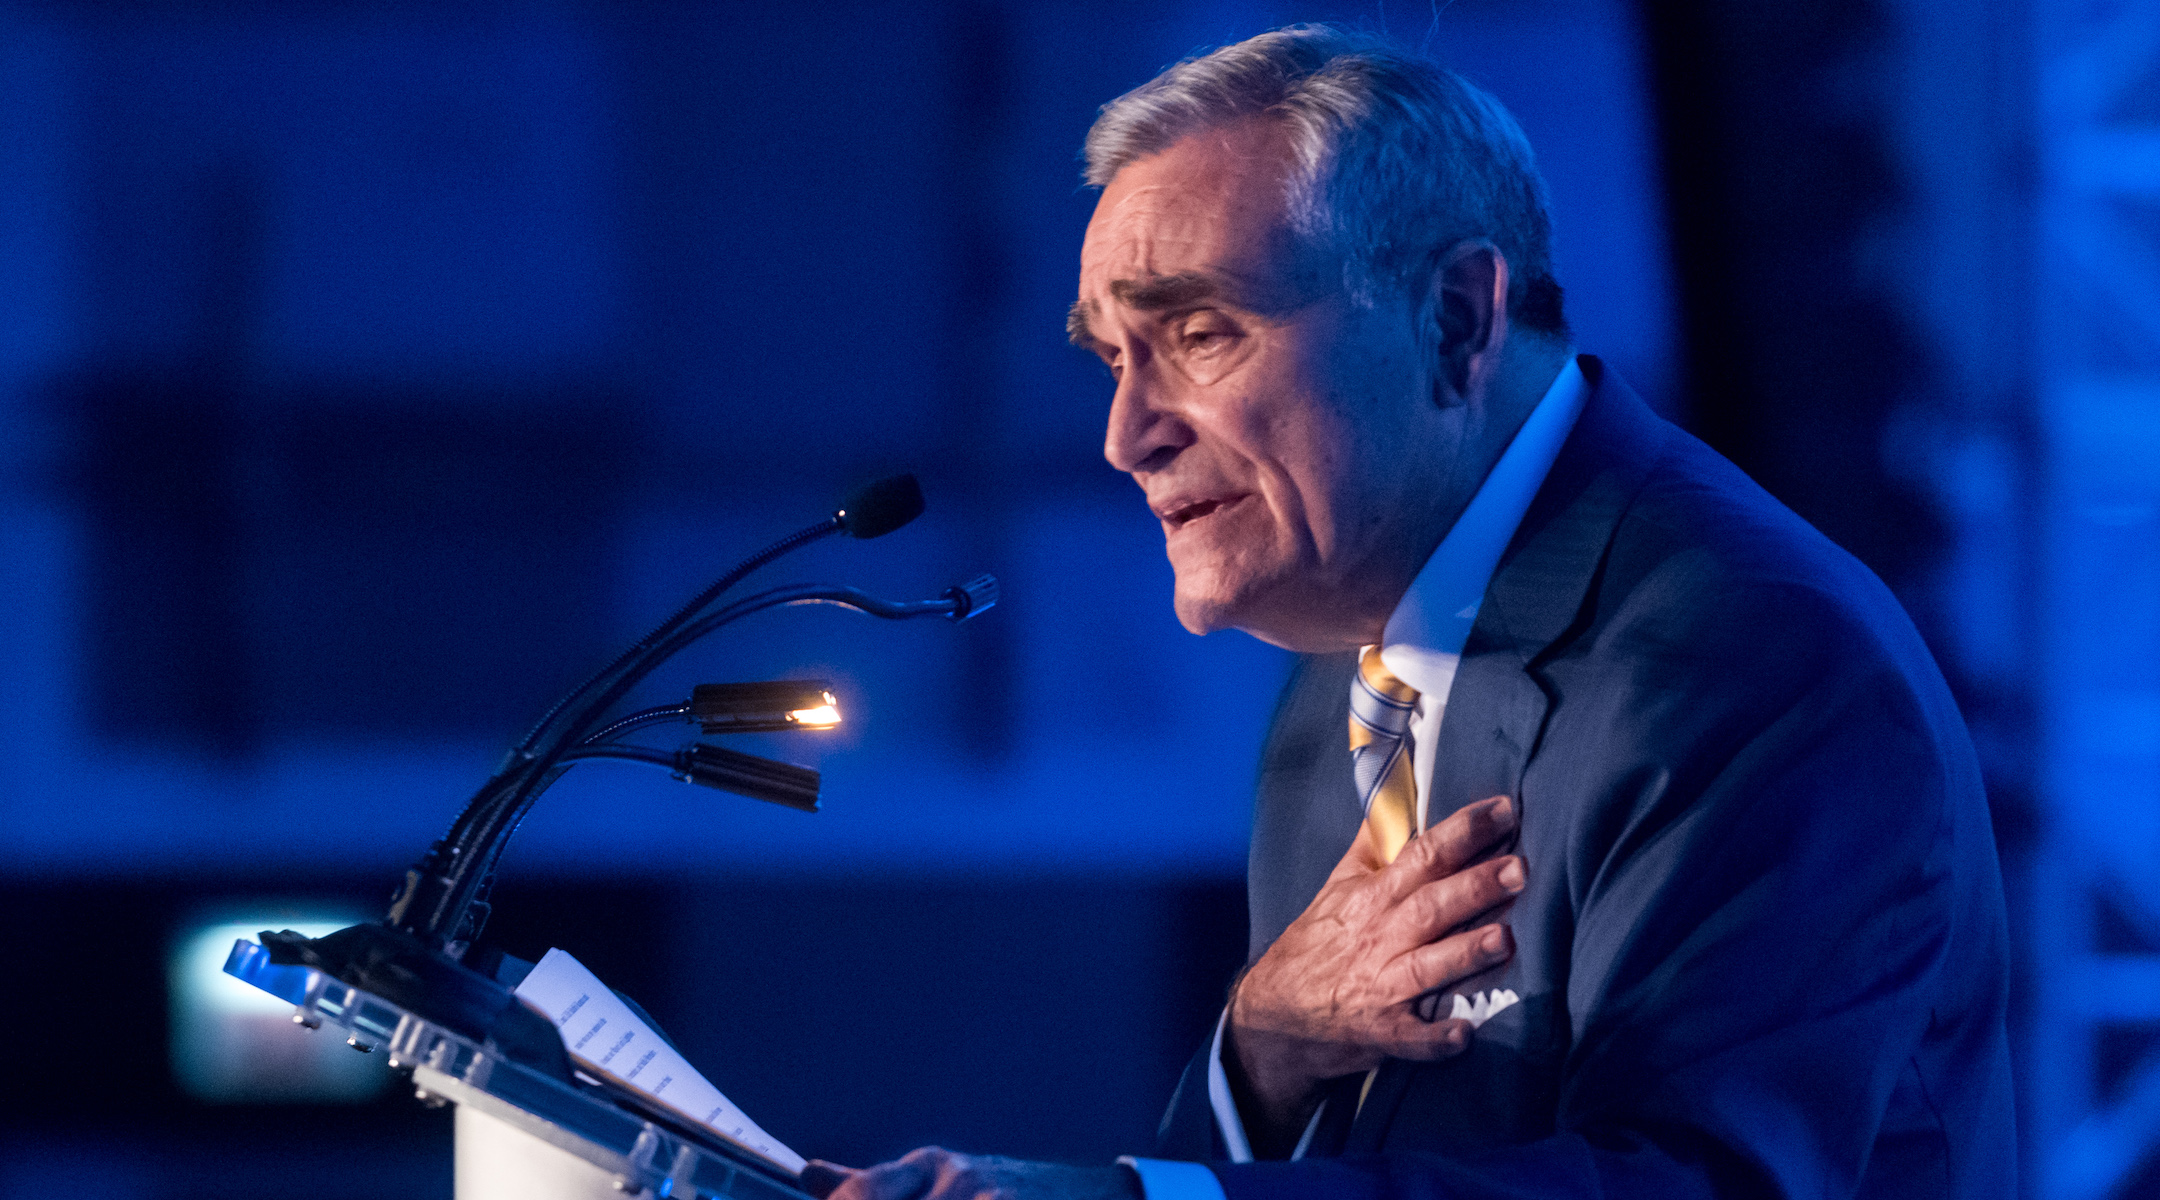 Steve Nasatir speaks at an event commemorating his 40 years as president of the Jewish United Fund in Chicago, Ill. on May 29, 2019. Nasatir was one of the most powerful Jewish federation executives in the country. (Robert Kusel)